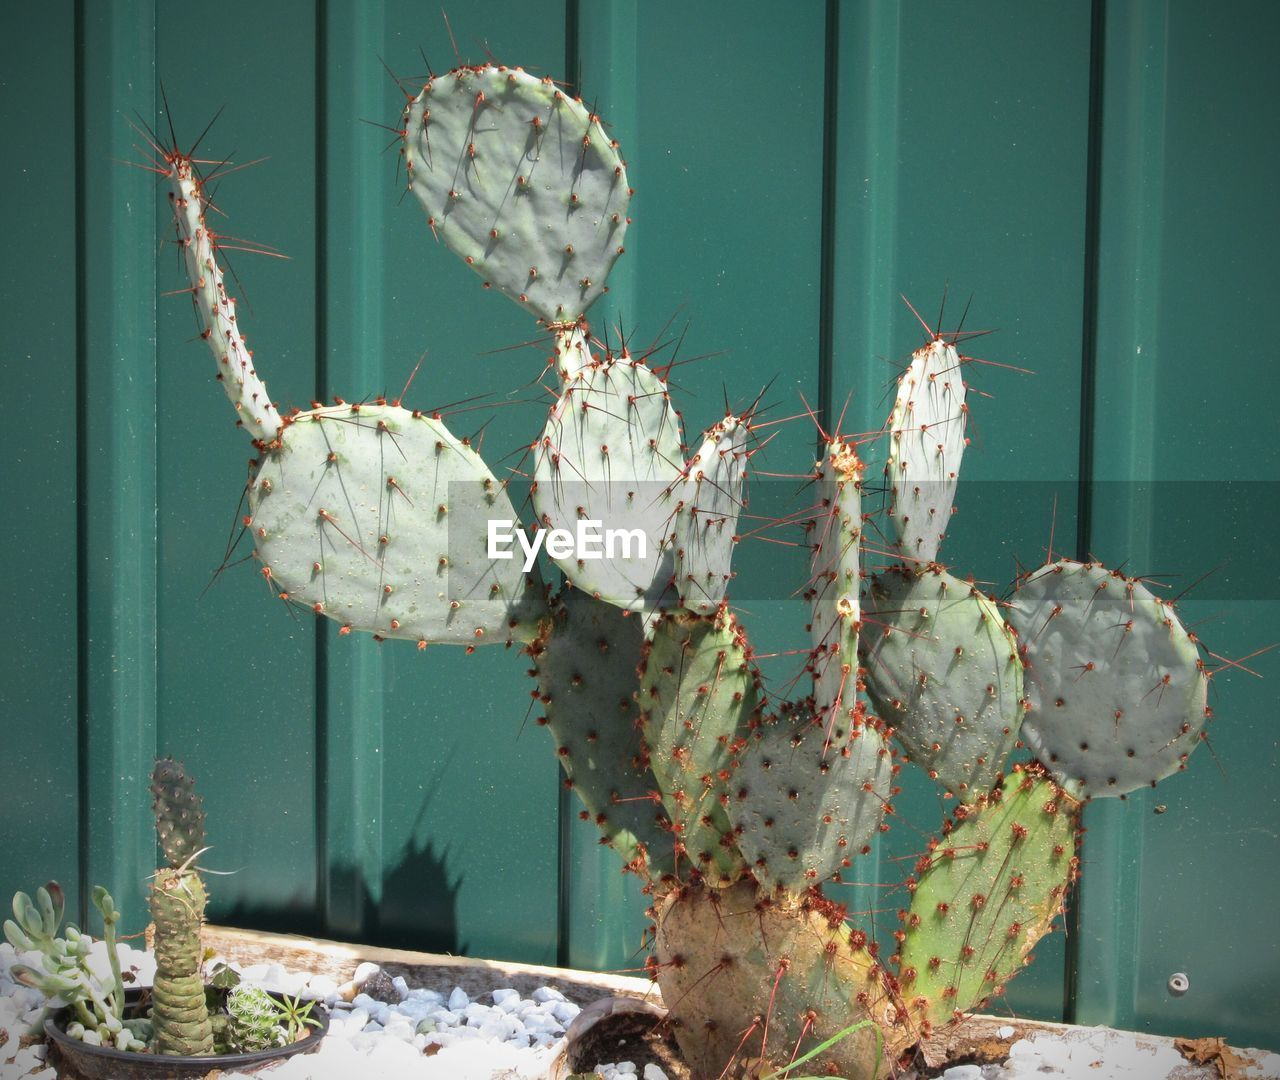 cactus, prickly pear cactus, growth, nature, thorn, plant, no people, spiked, green color, day, close-up, outdoors, beauty in nature, flower, saguaro cactus, animal themes, freshness